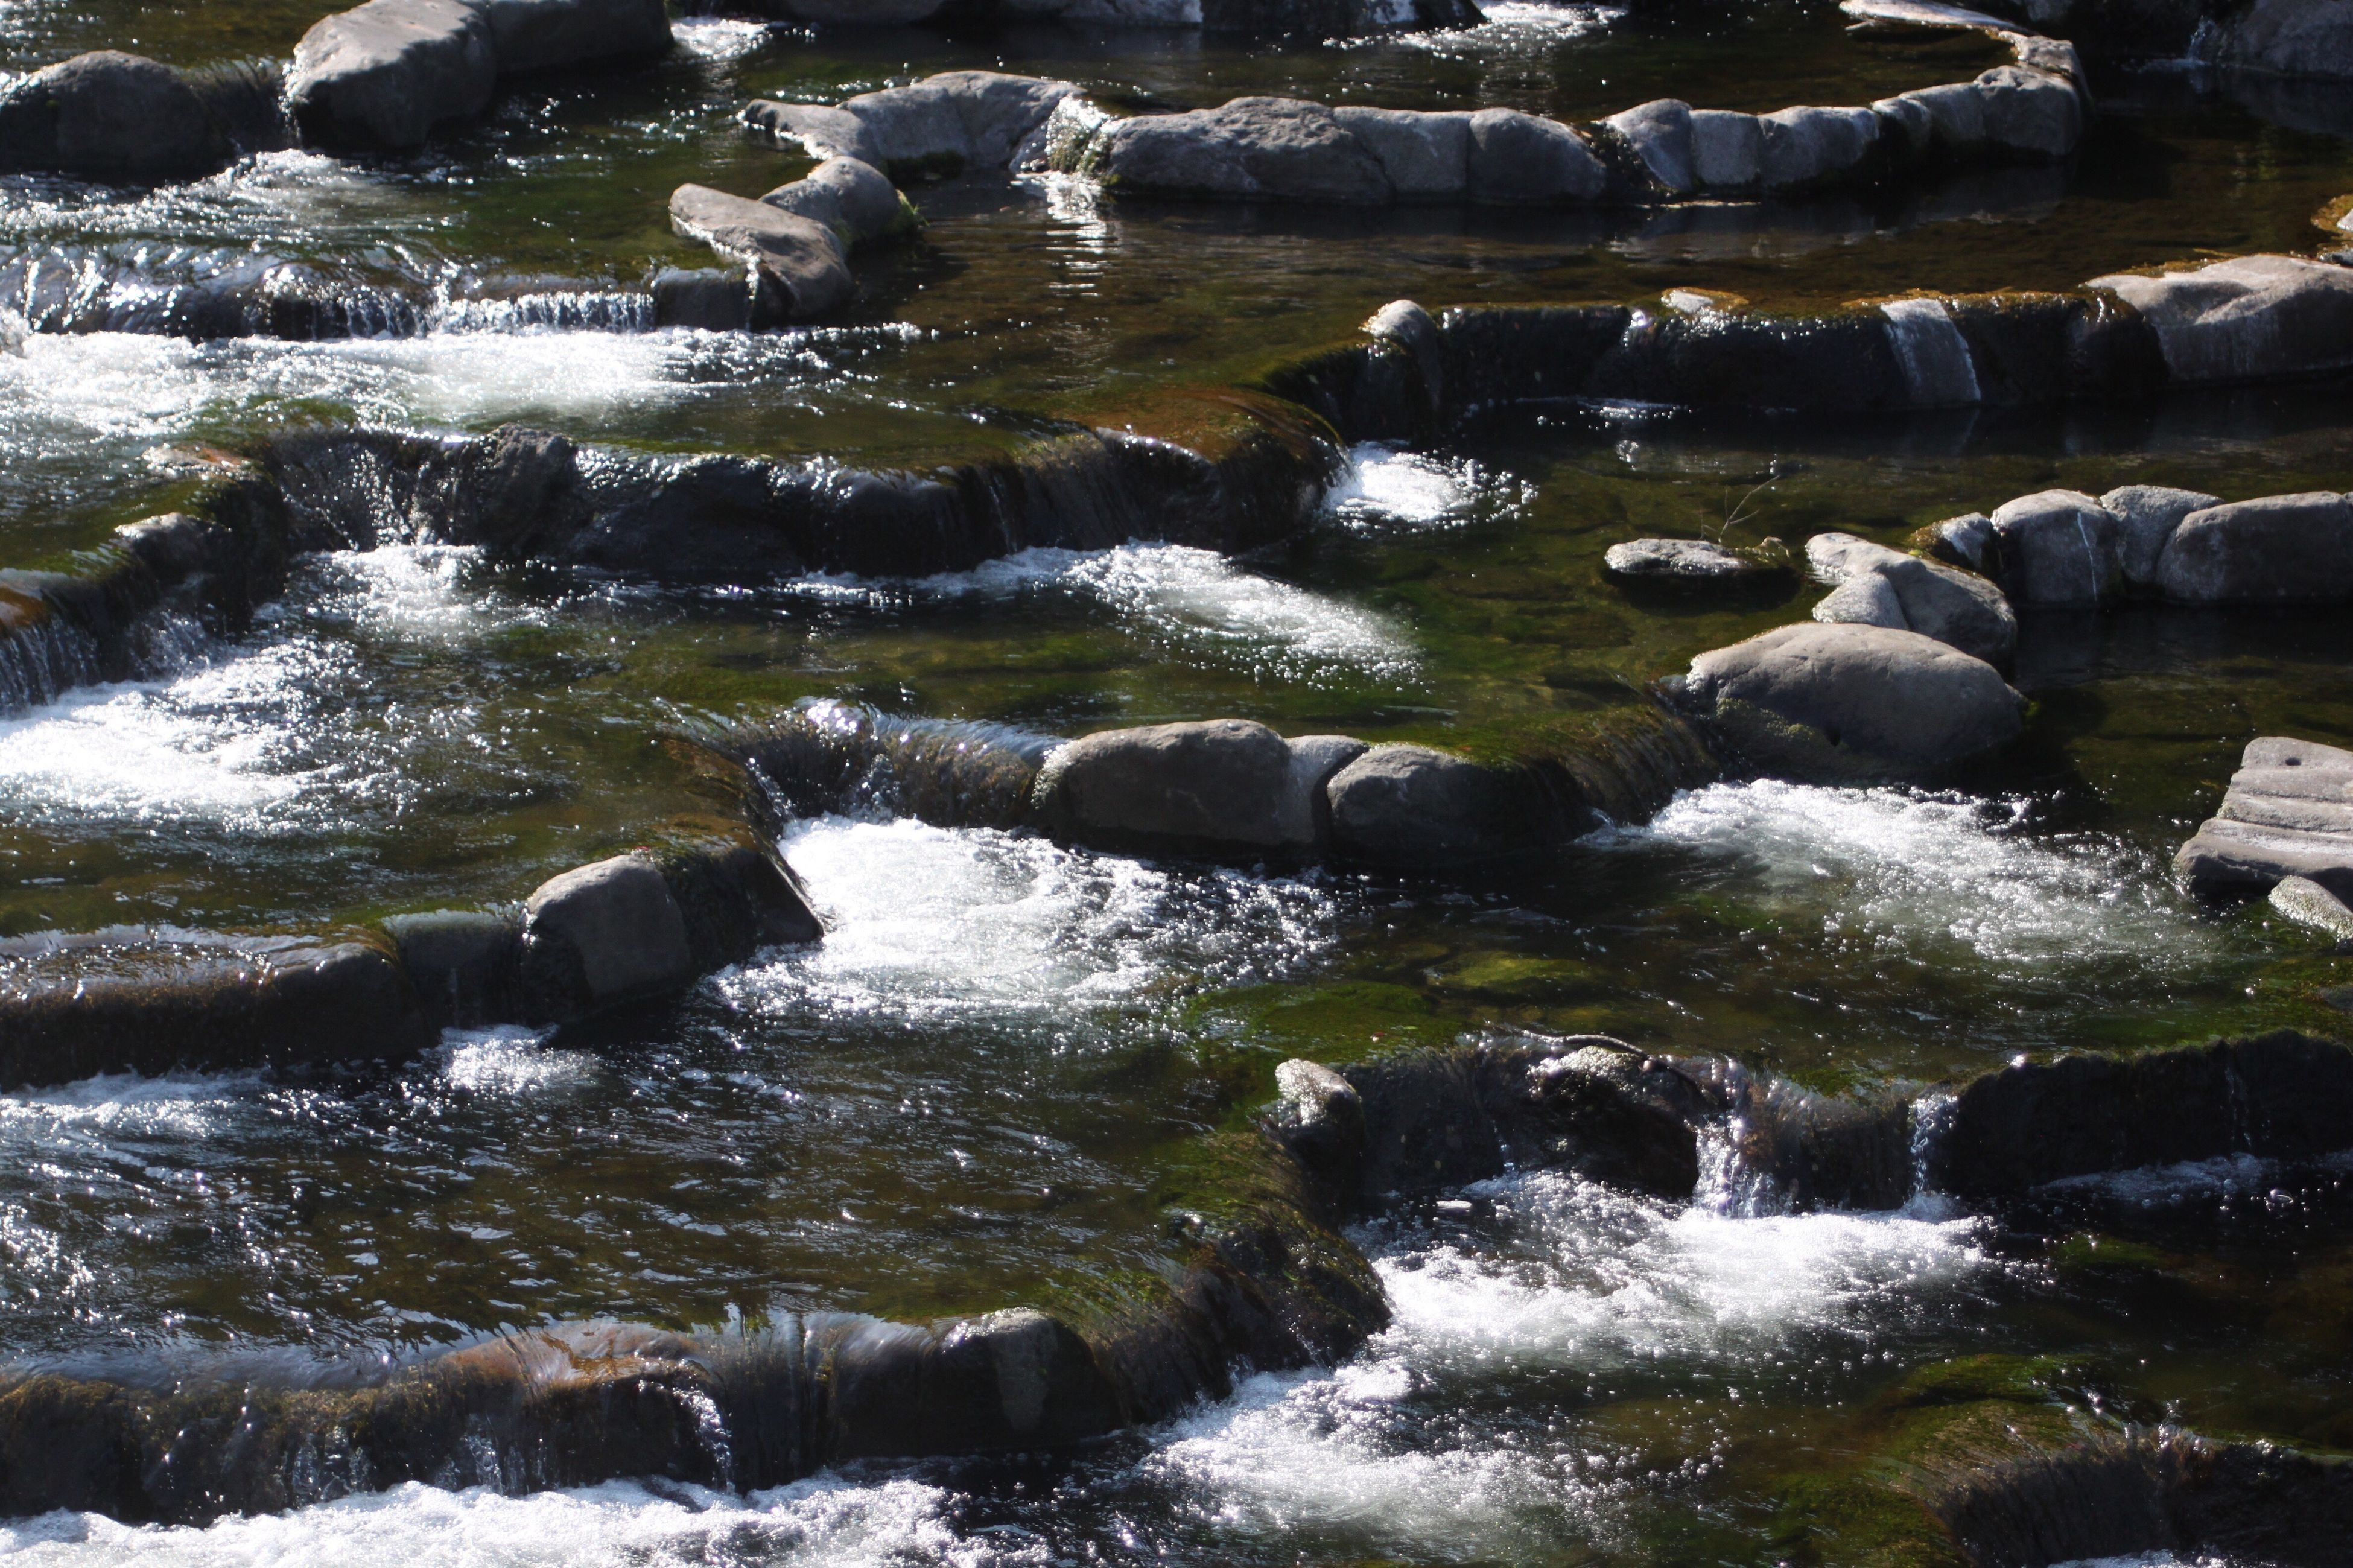 water, no people, motion, nature, outdoors, day, river, beauty in nature, waterfall, animal themes, mammal